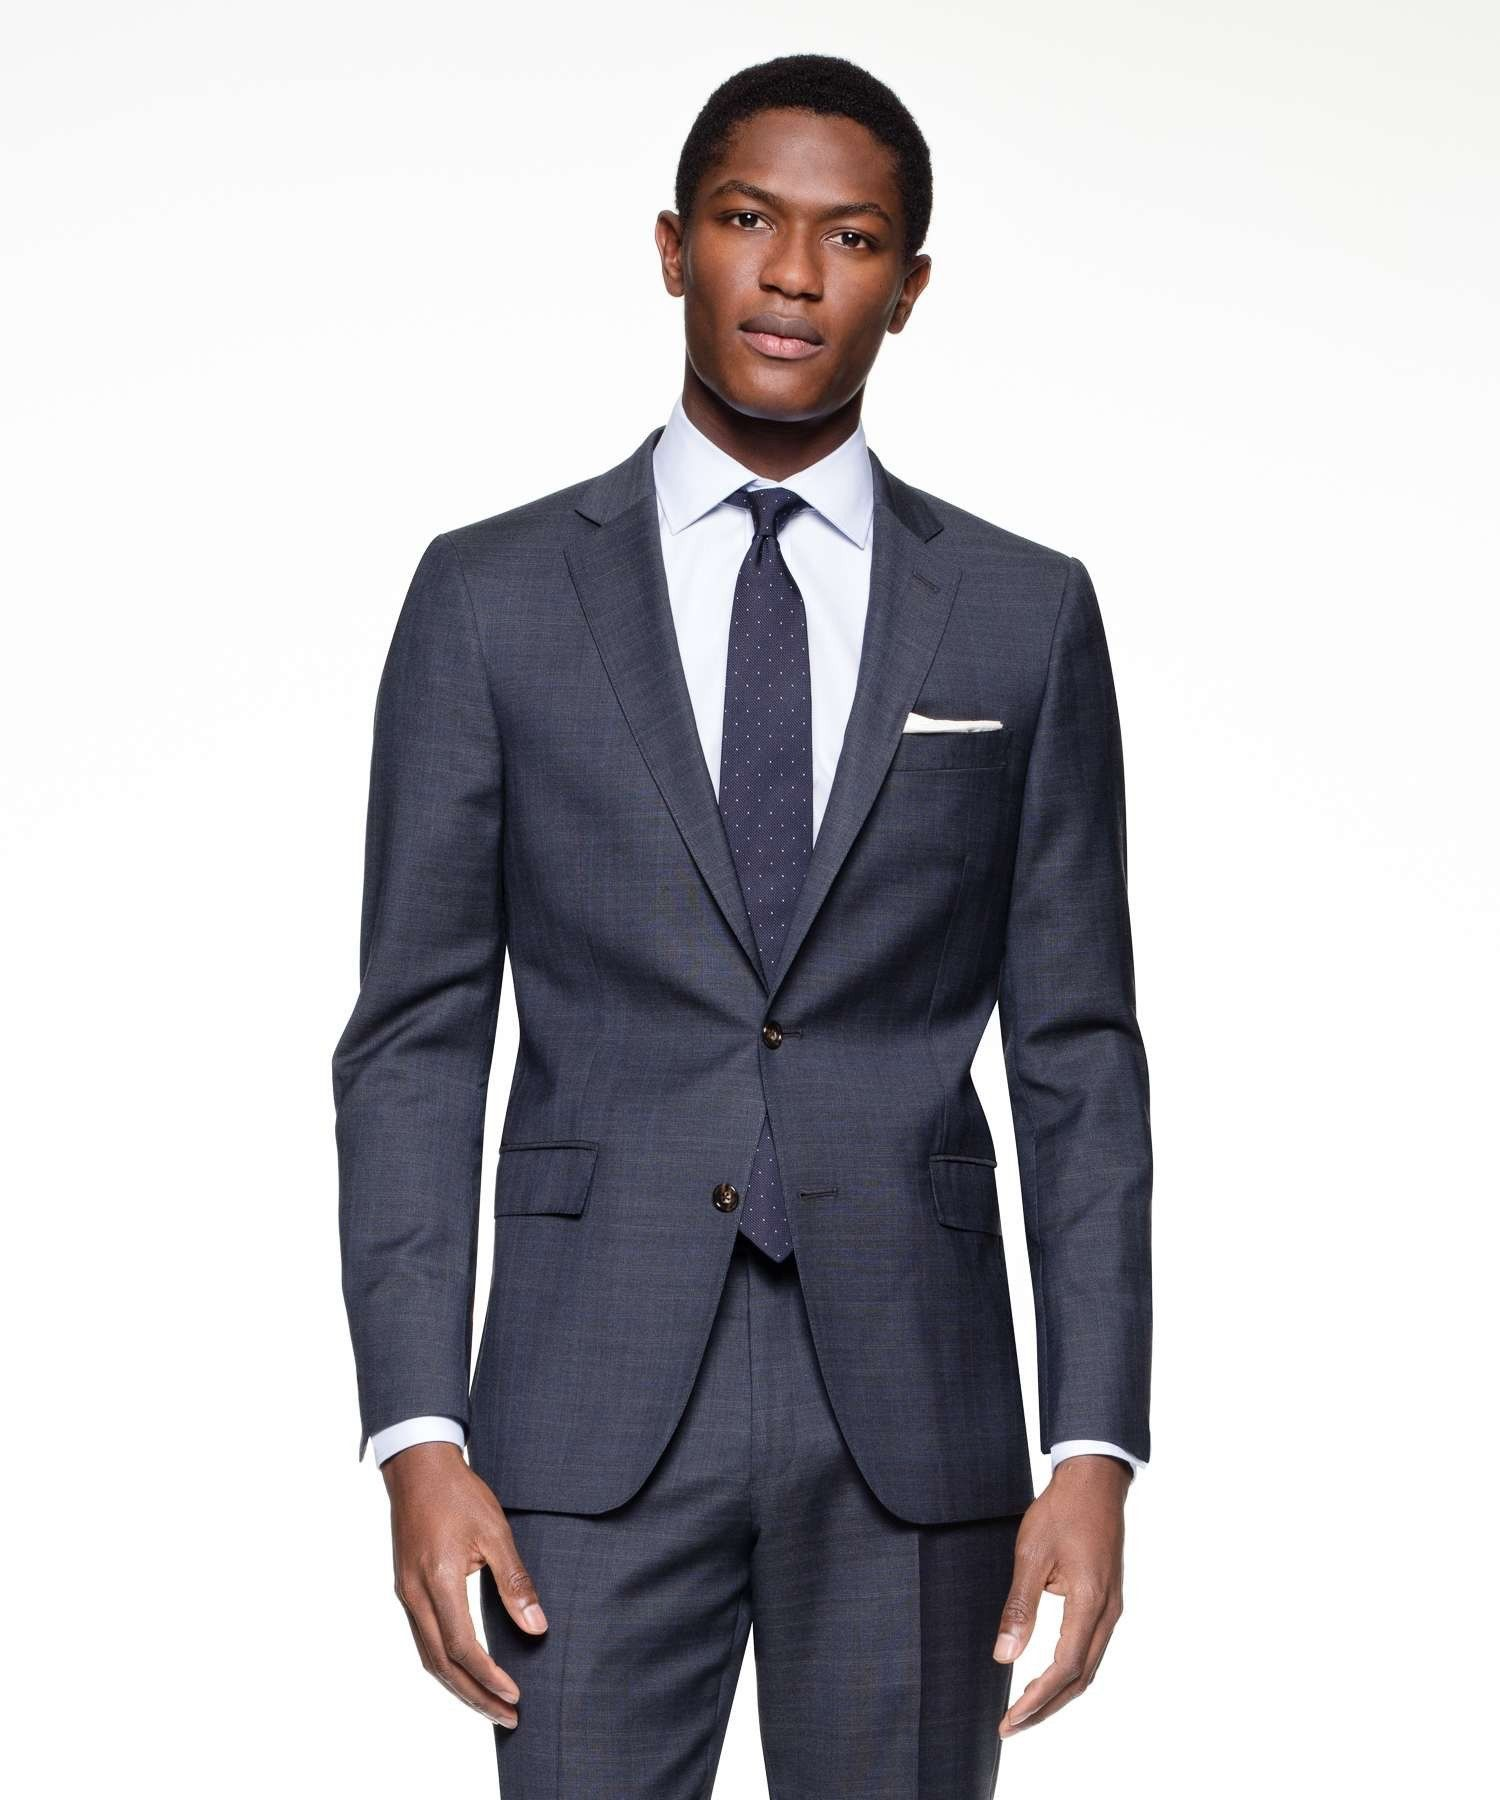 This is a photo of Tactueux The Black Label Suits